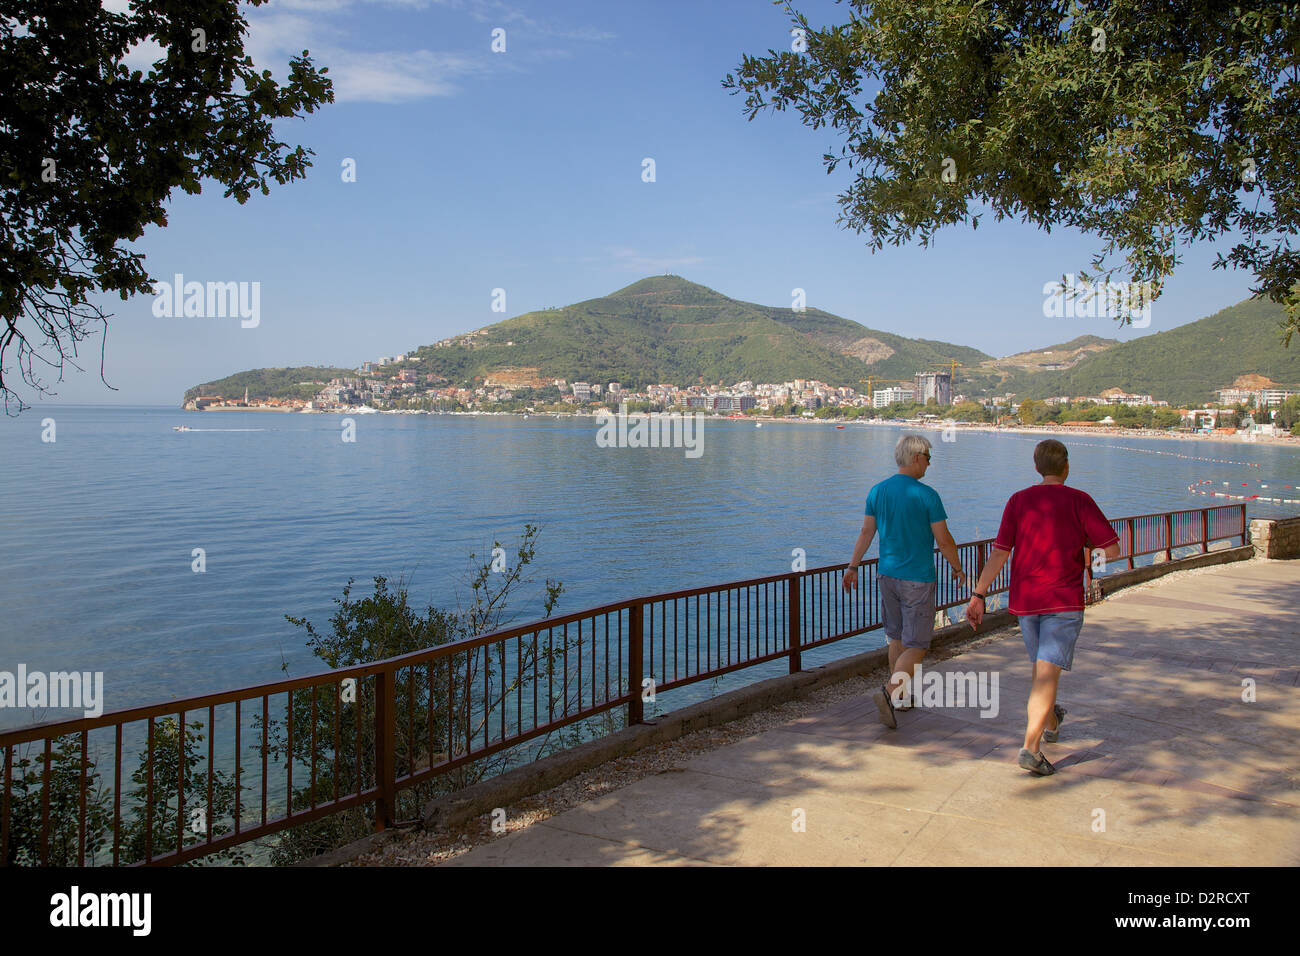 Walkers and Old Town, Budva Bay, Montenegro, Europe - Stock Image